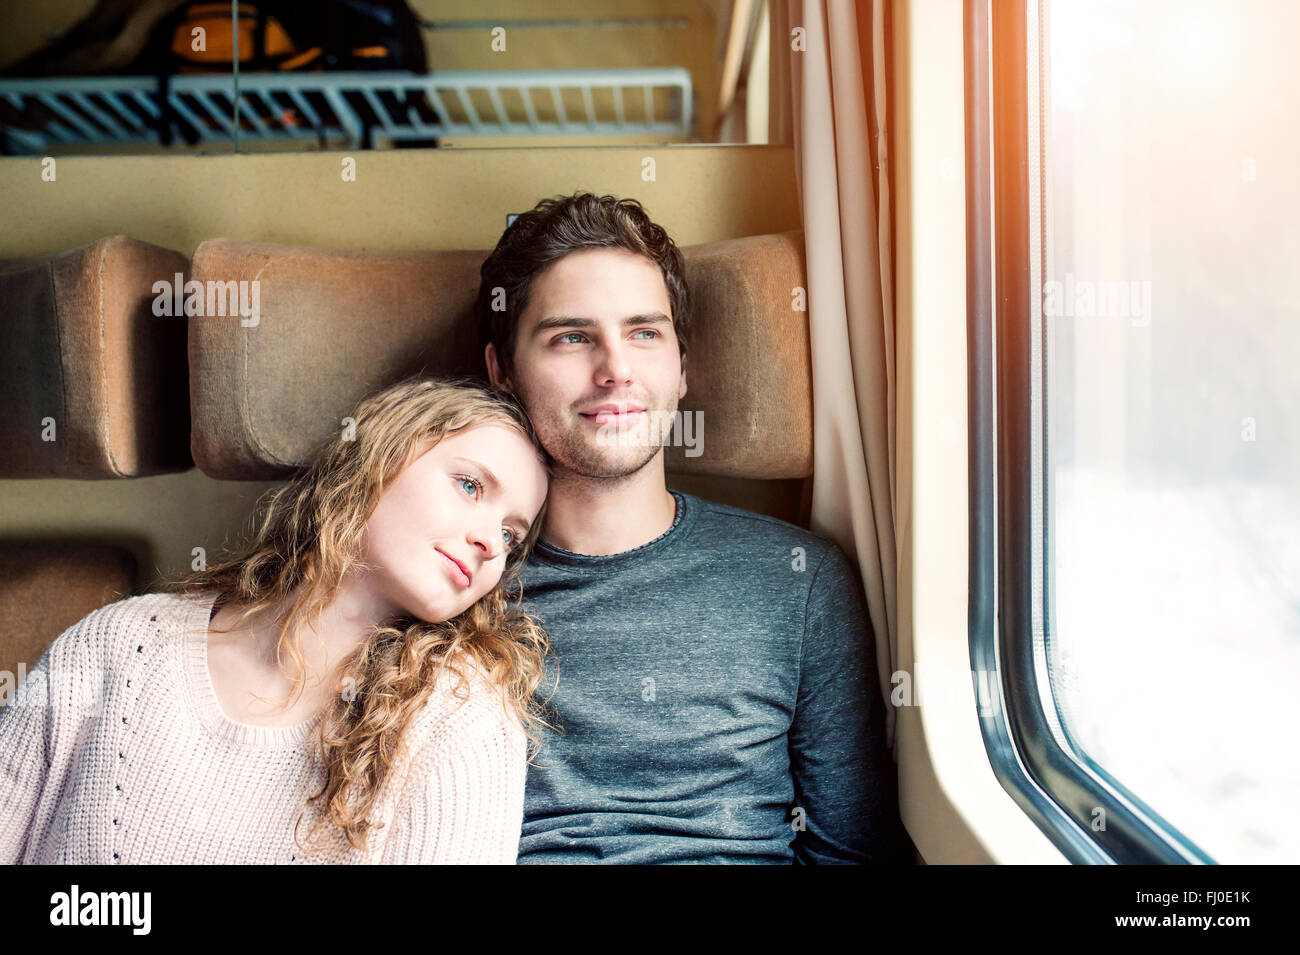 Smiling young couple in train car looking out of window - Stock Image